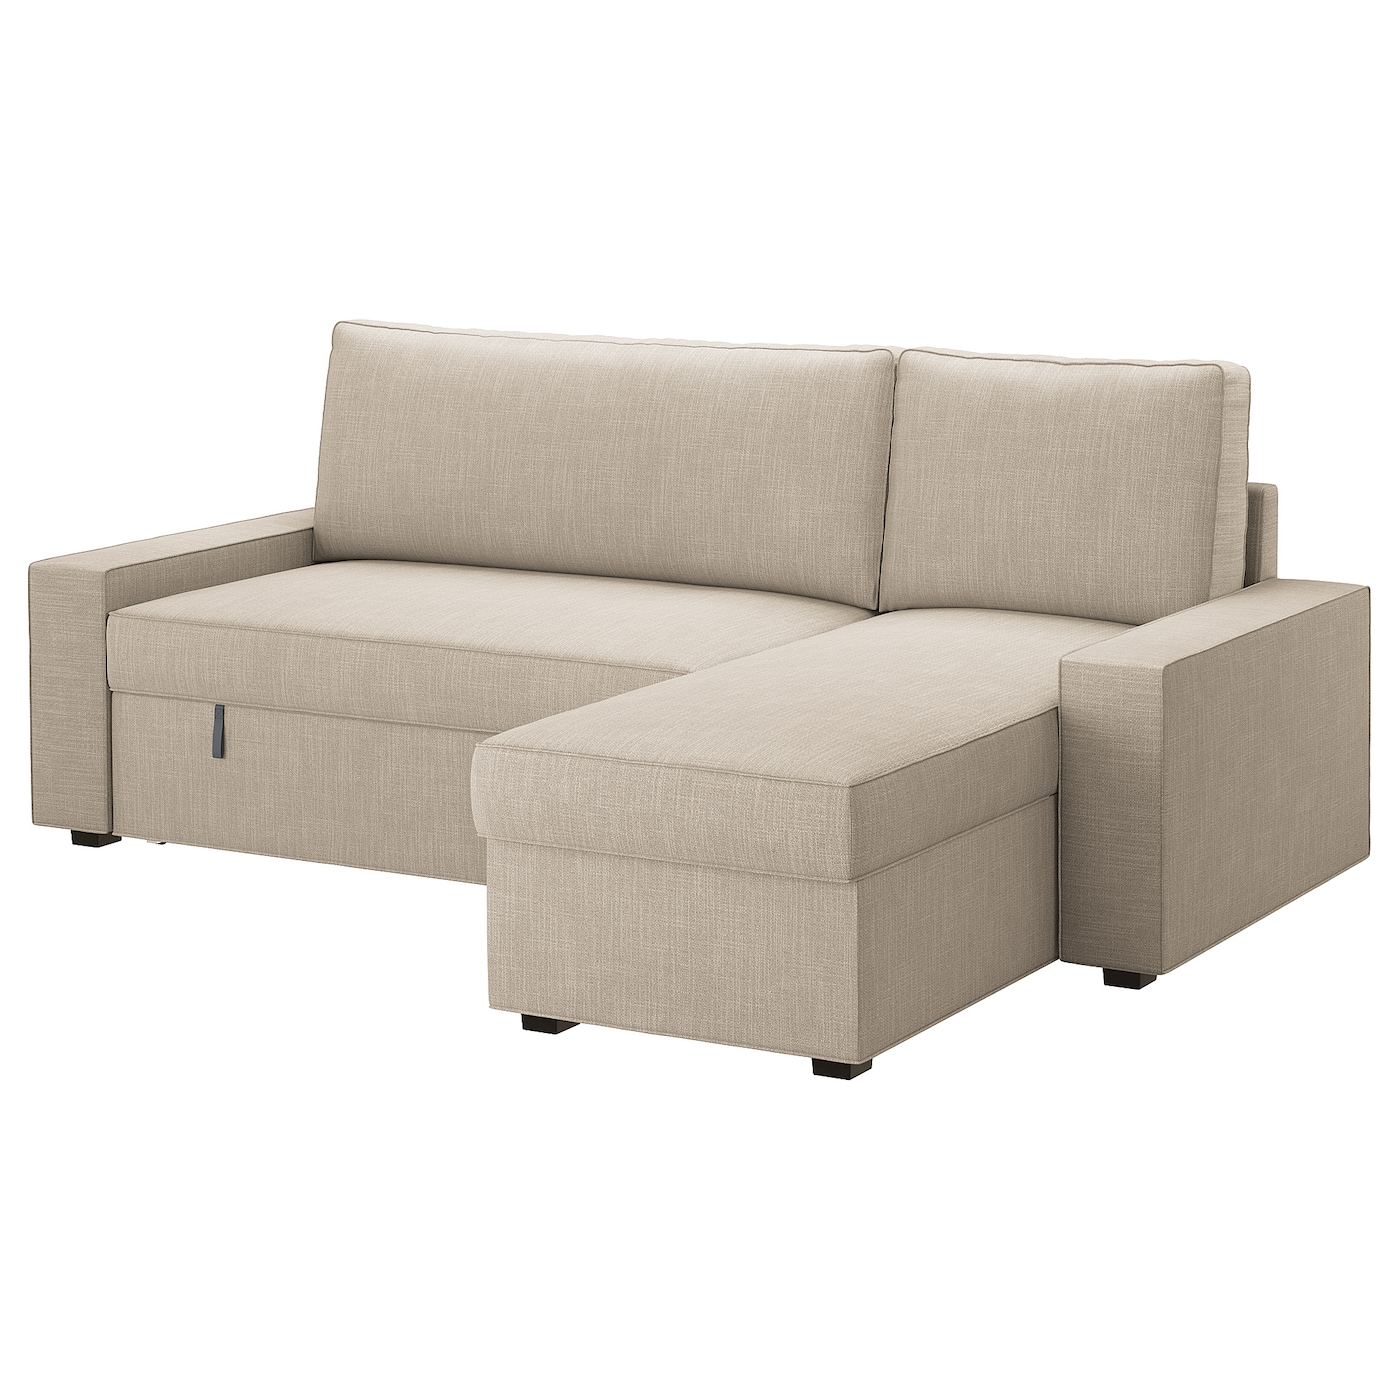 Sofa beds with chaise design of chaise lounge sofa bed for Sofas con chaise longue